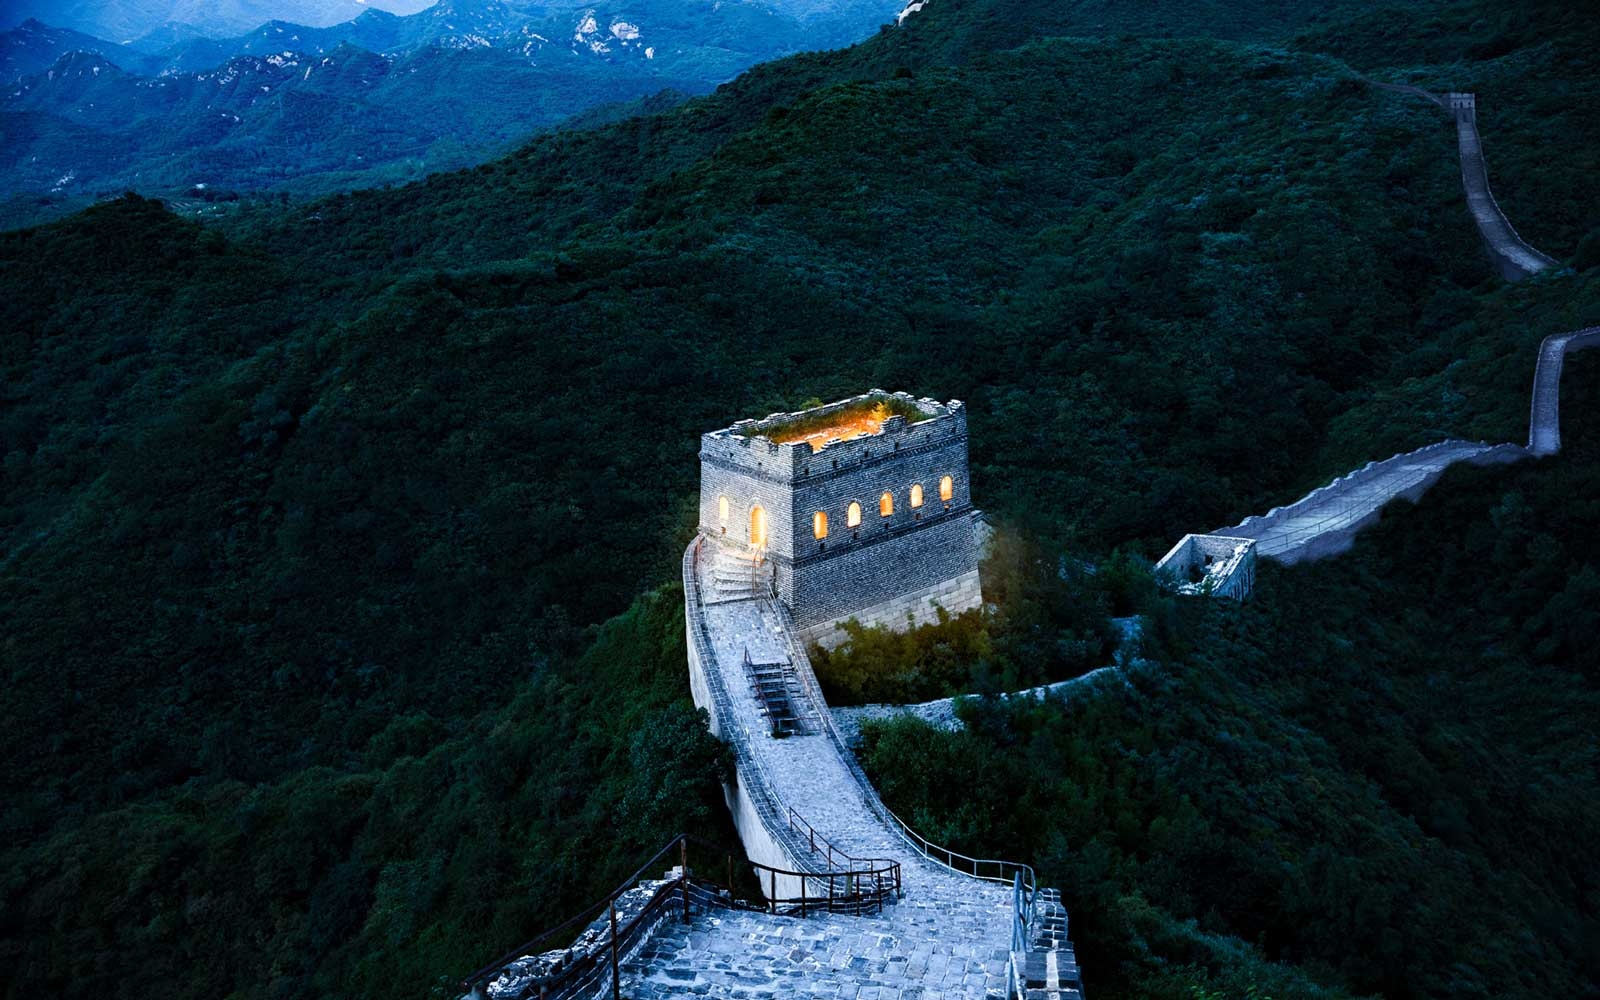 Airbnb Is Canceling Its Sleepover at the Great Wall of China